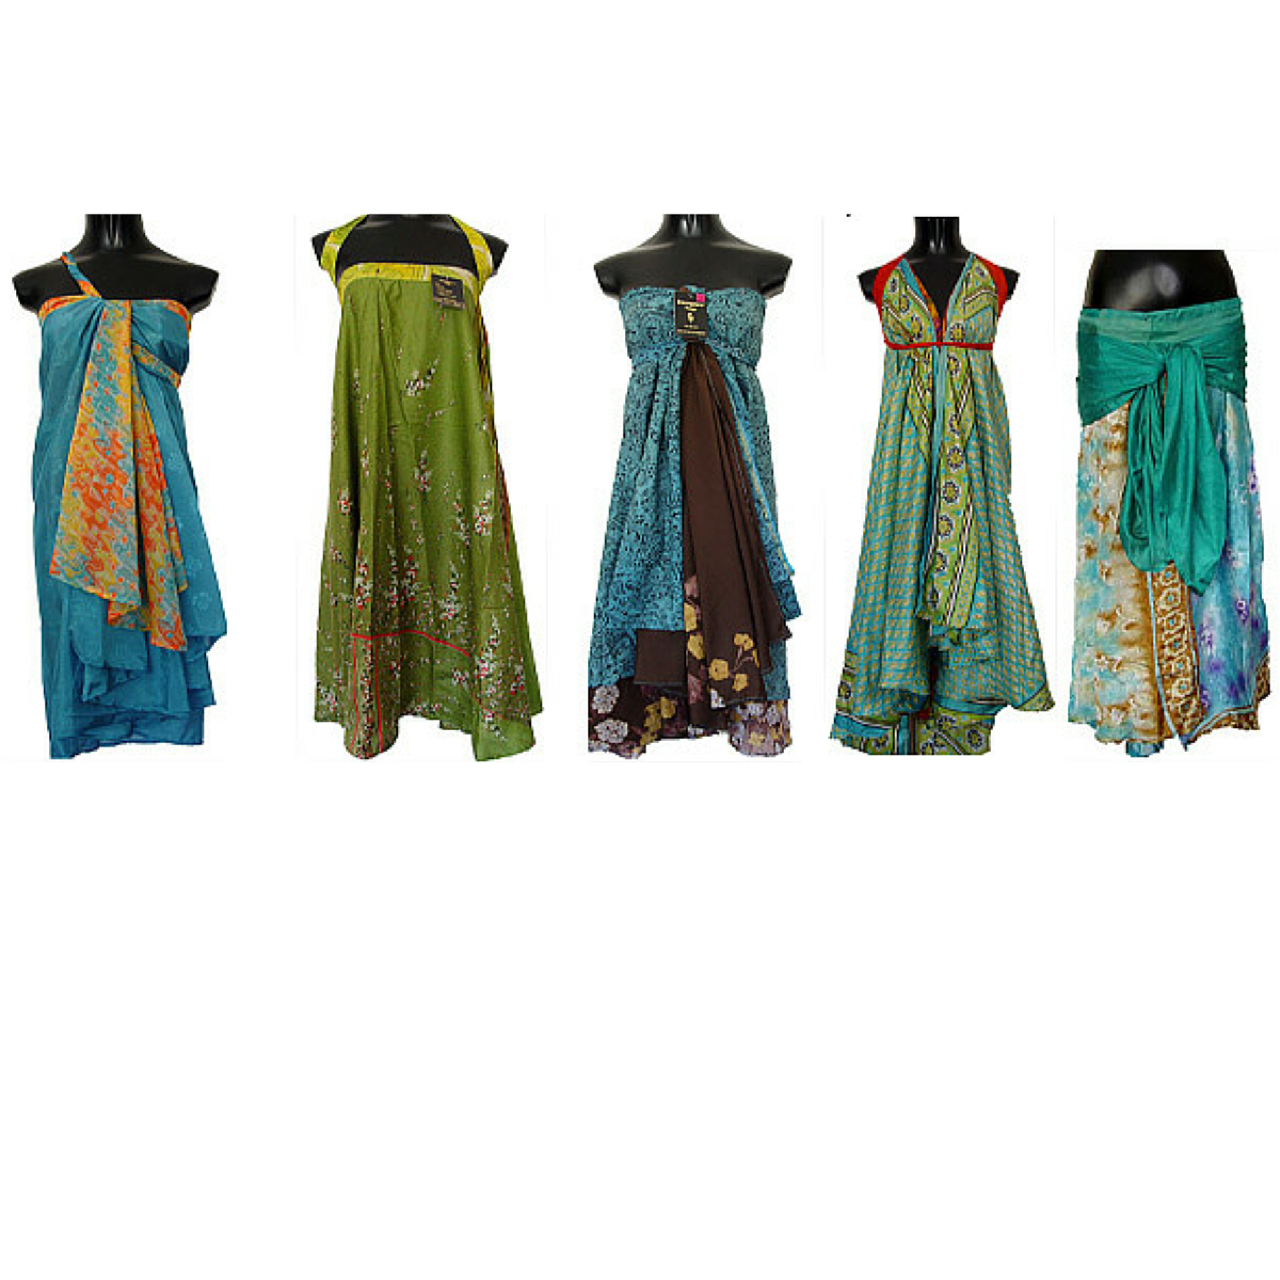 c72eed8f5c69 SURPRISE ME: Sari Silk Wrap Skirts: Plus, Regular, Short, Little Girl and  Maternity (go to site for recycled sari silk yarn)